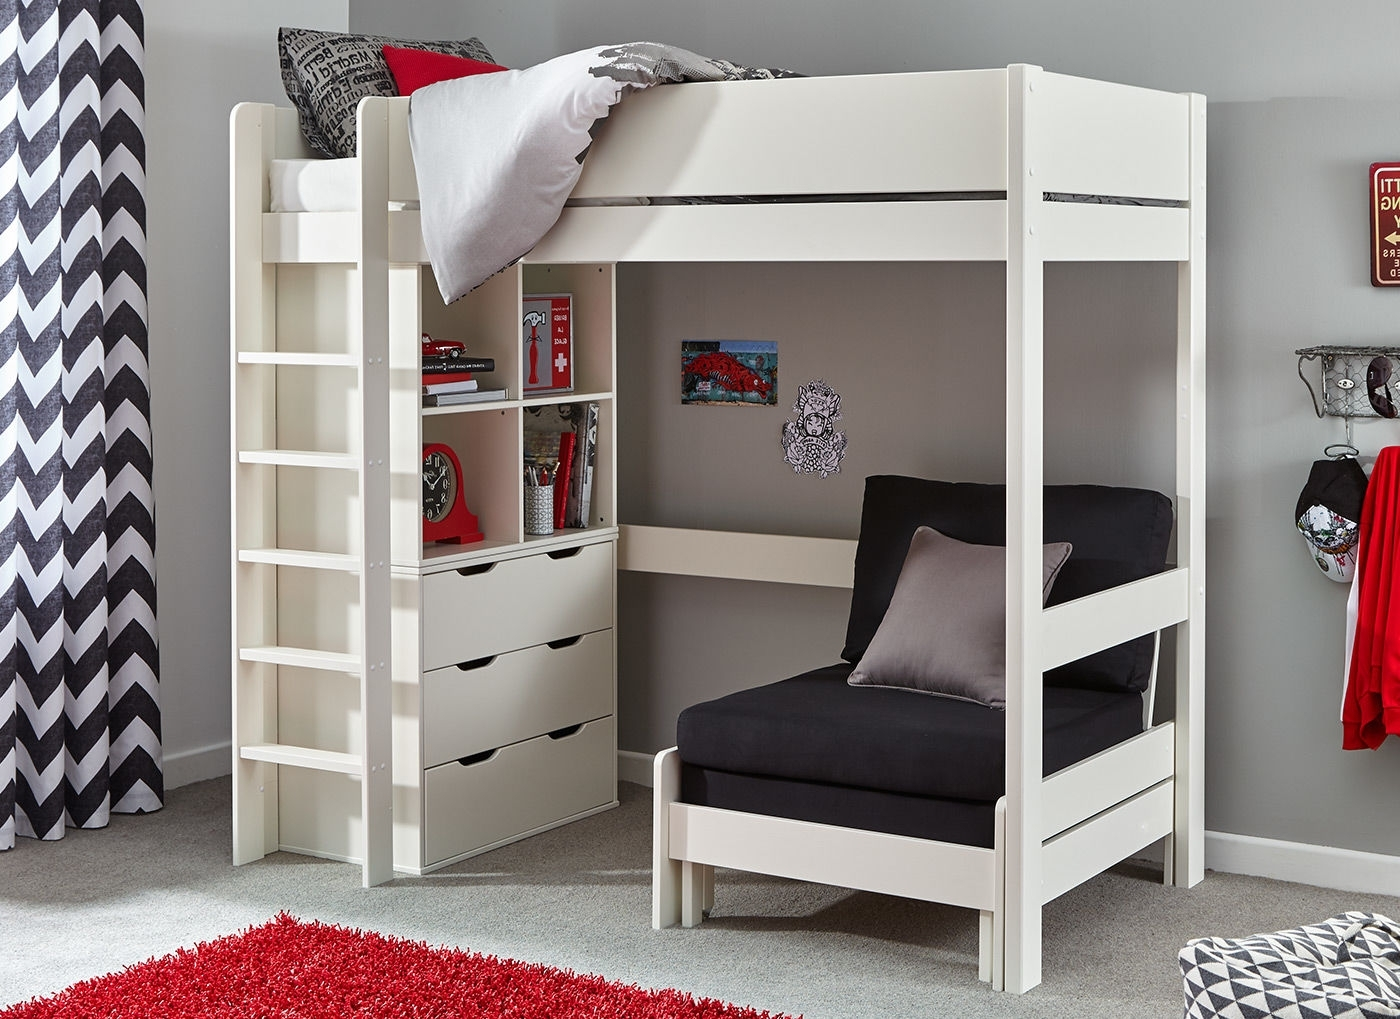 High Sleeper Bed With Wardrobes Within Trendy Tinsley Highsleeper With Chest And Storage – Black And White (View 10 of 15)